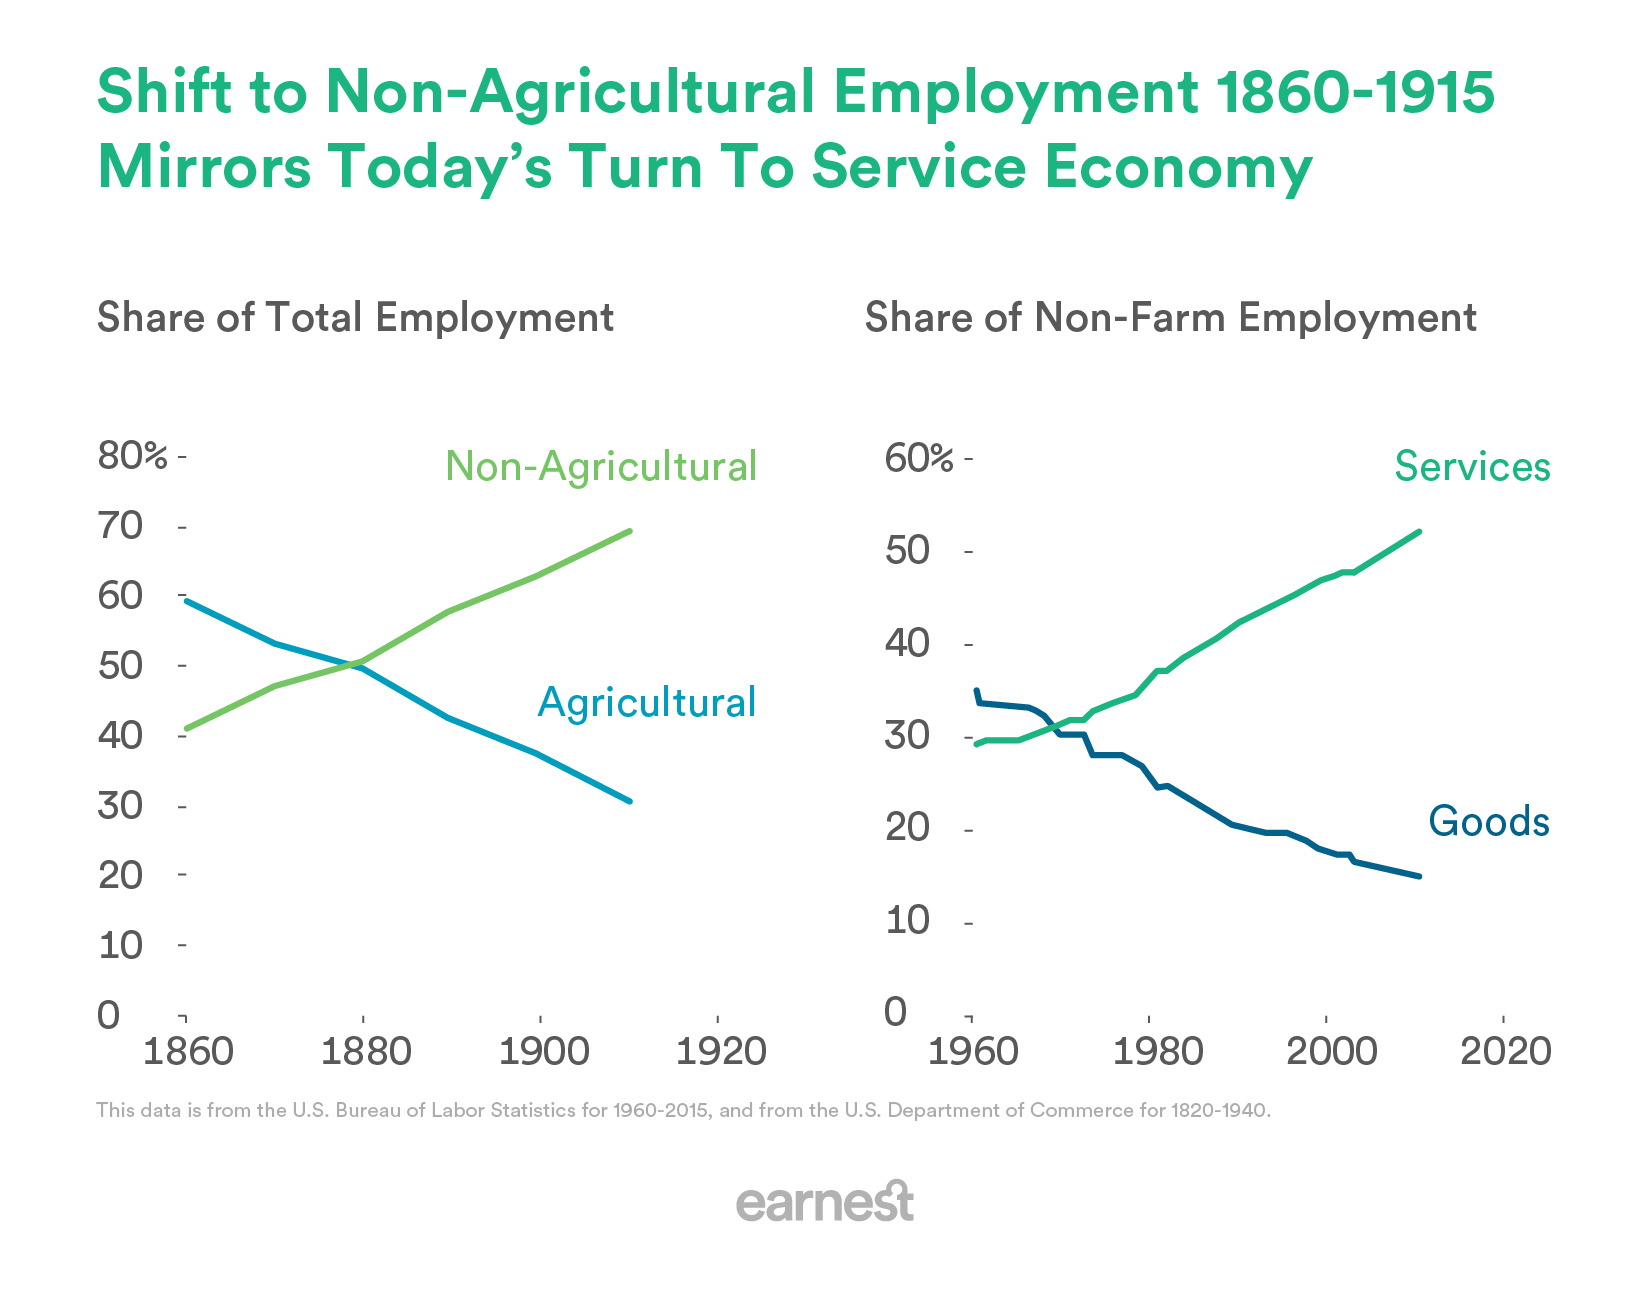 Two line charts showing that in the 19th century, employment shifted from mostly farm-based to mostly non-farm based; and in the 20th century, employment shifted from mostly goods-based to mostly services-based.